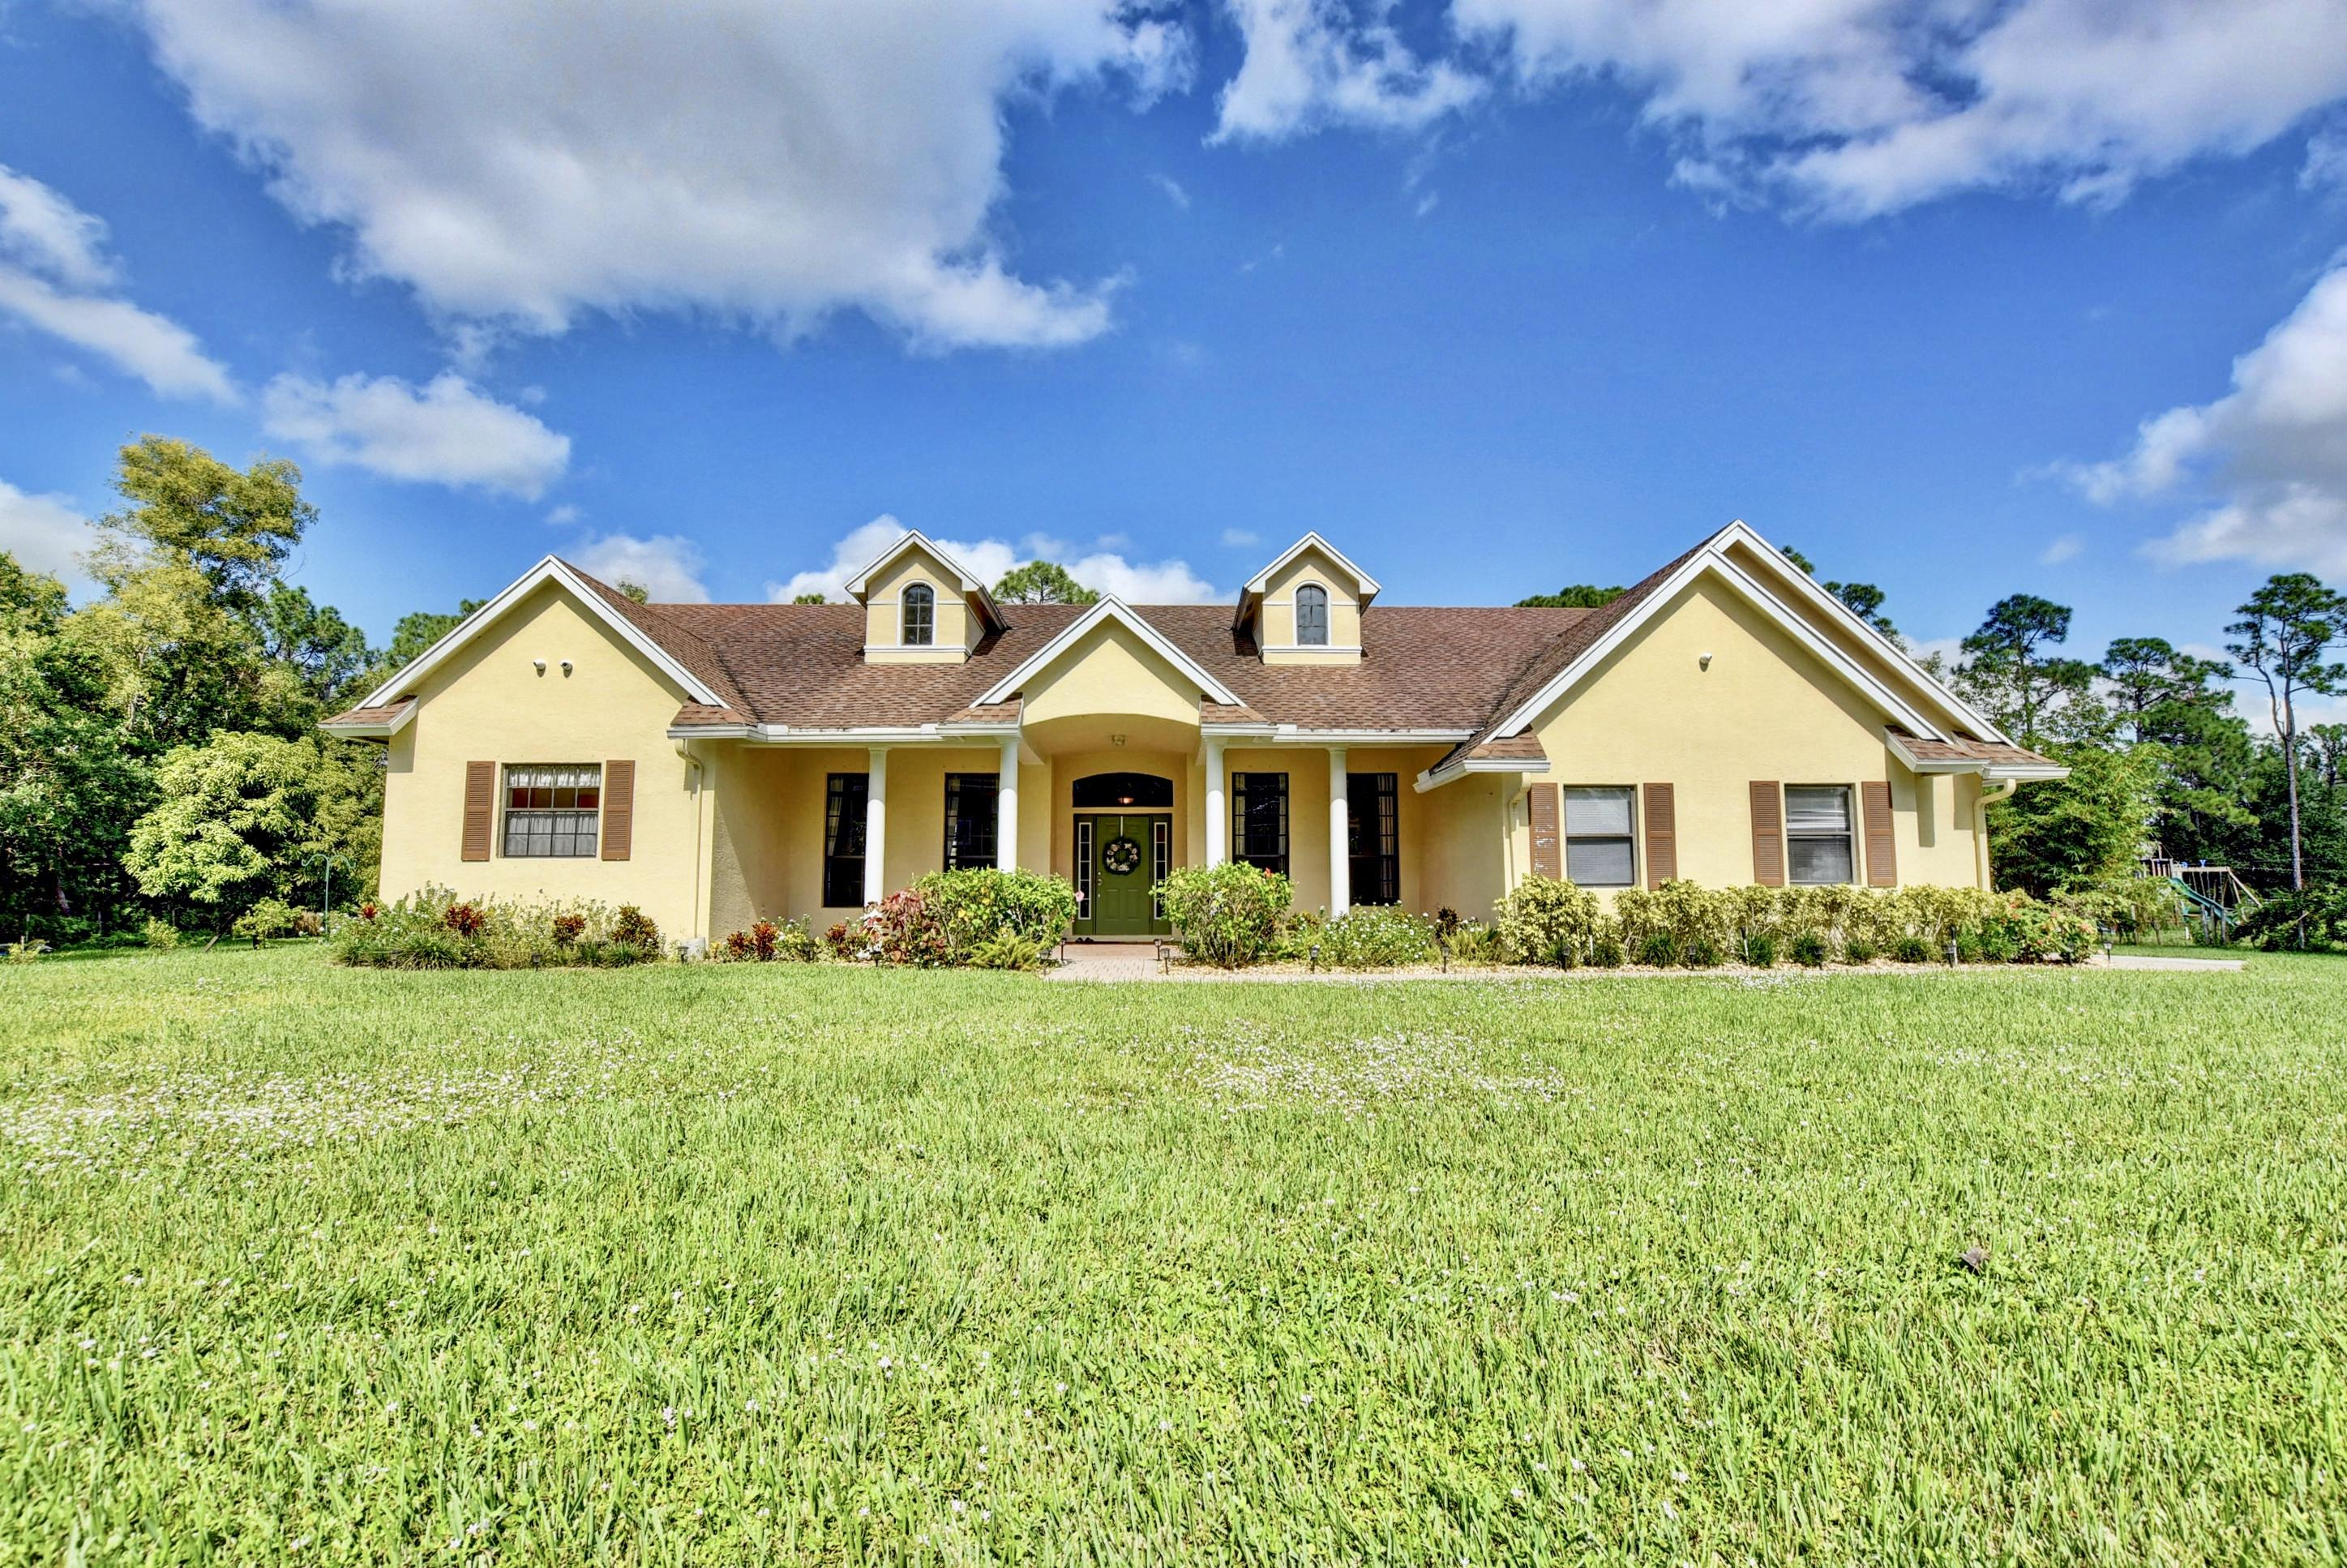 Details for 18563 44th Place, Loxahatchee, FL 33470